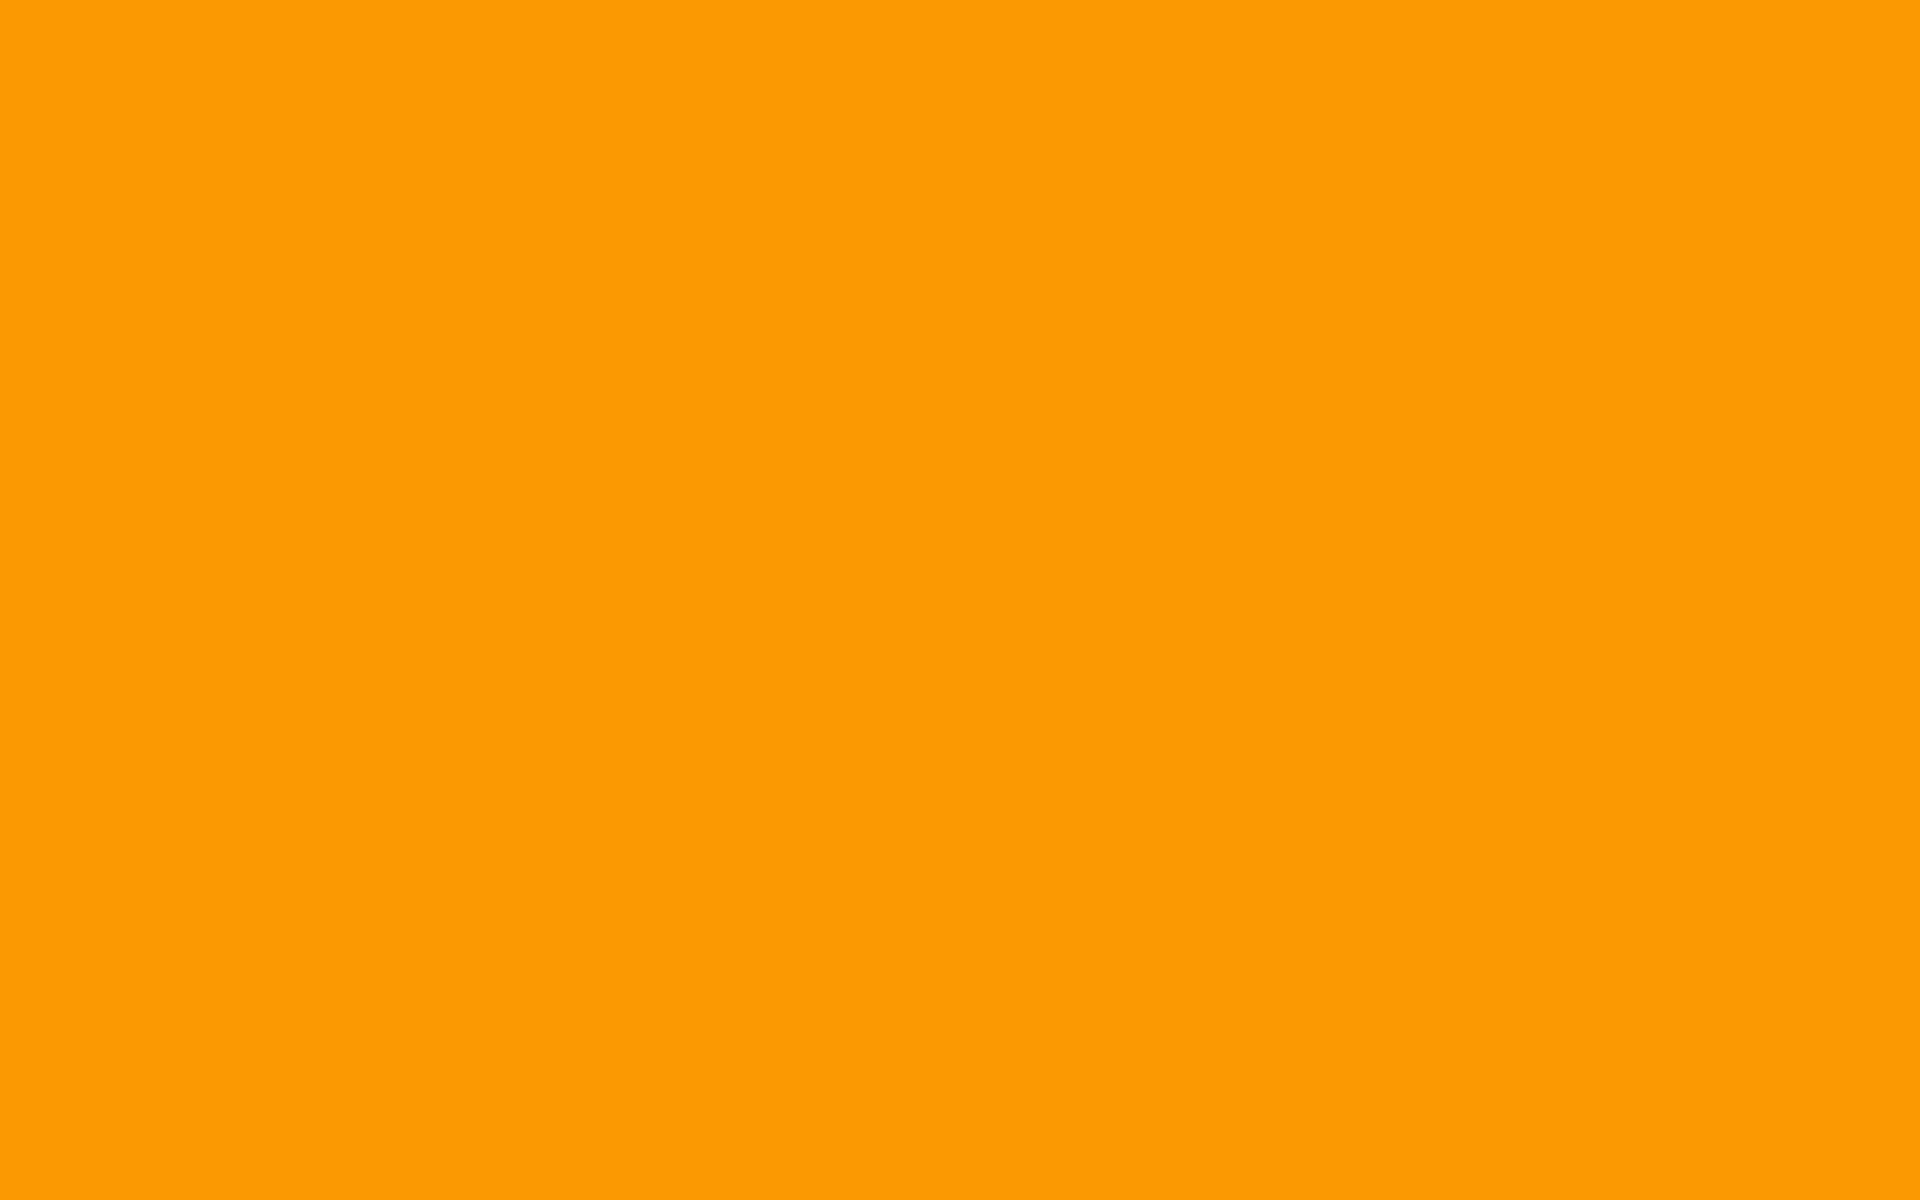 1920x1200 Orange RYB Solid Color Background